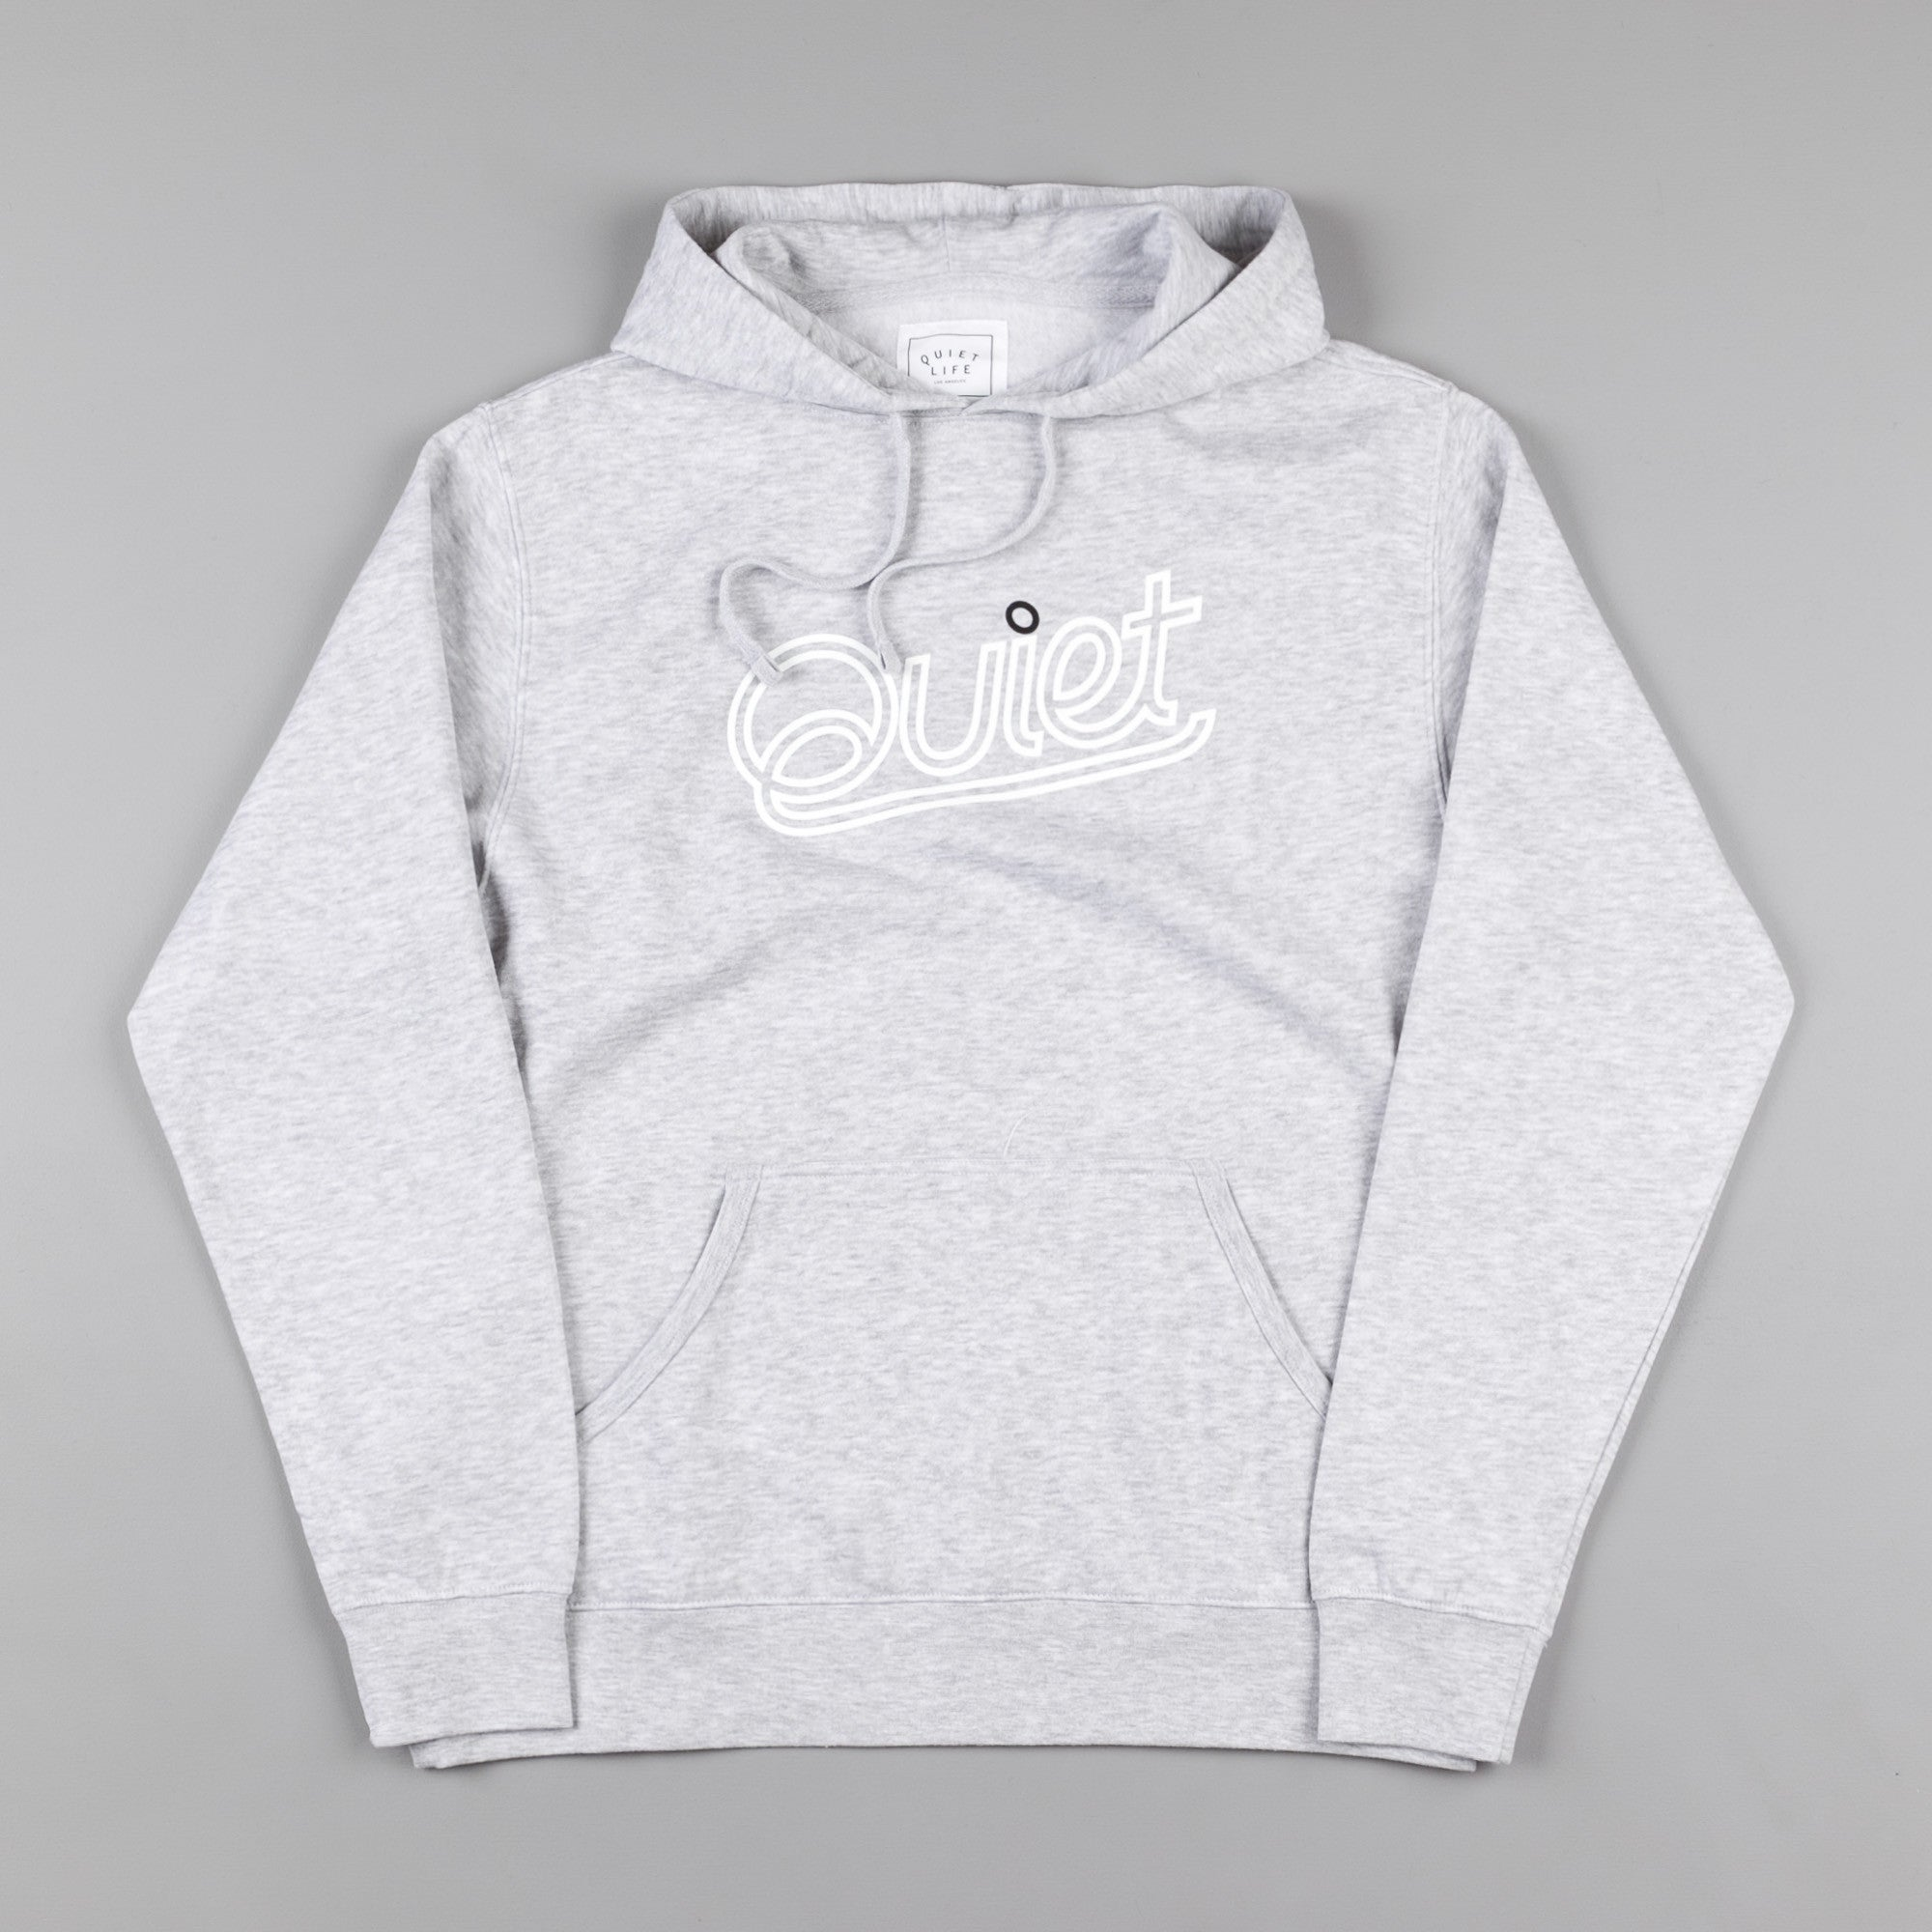 The Quiet Life Script Outline Hooded Sweatshirt - Heather Grey